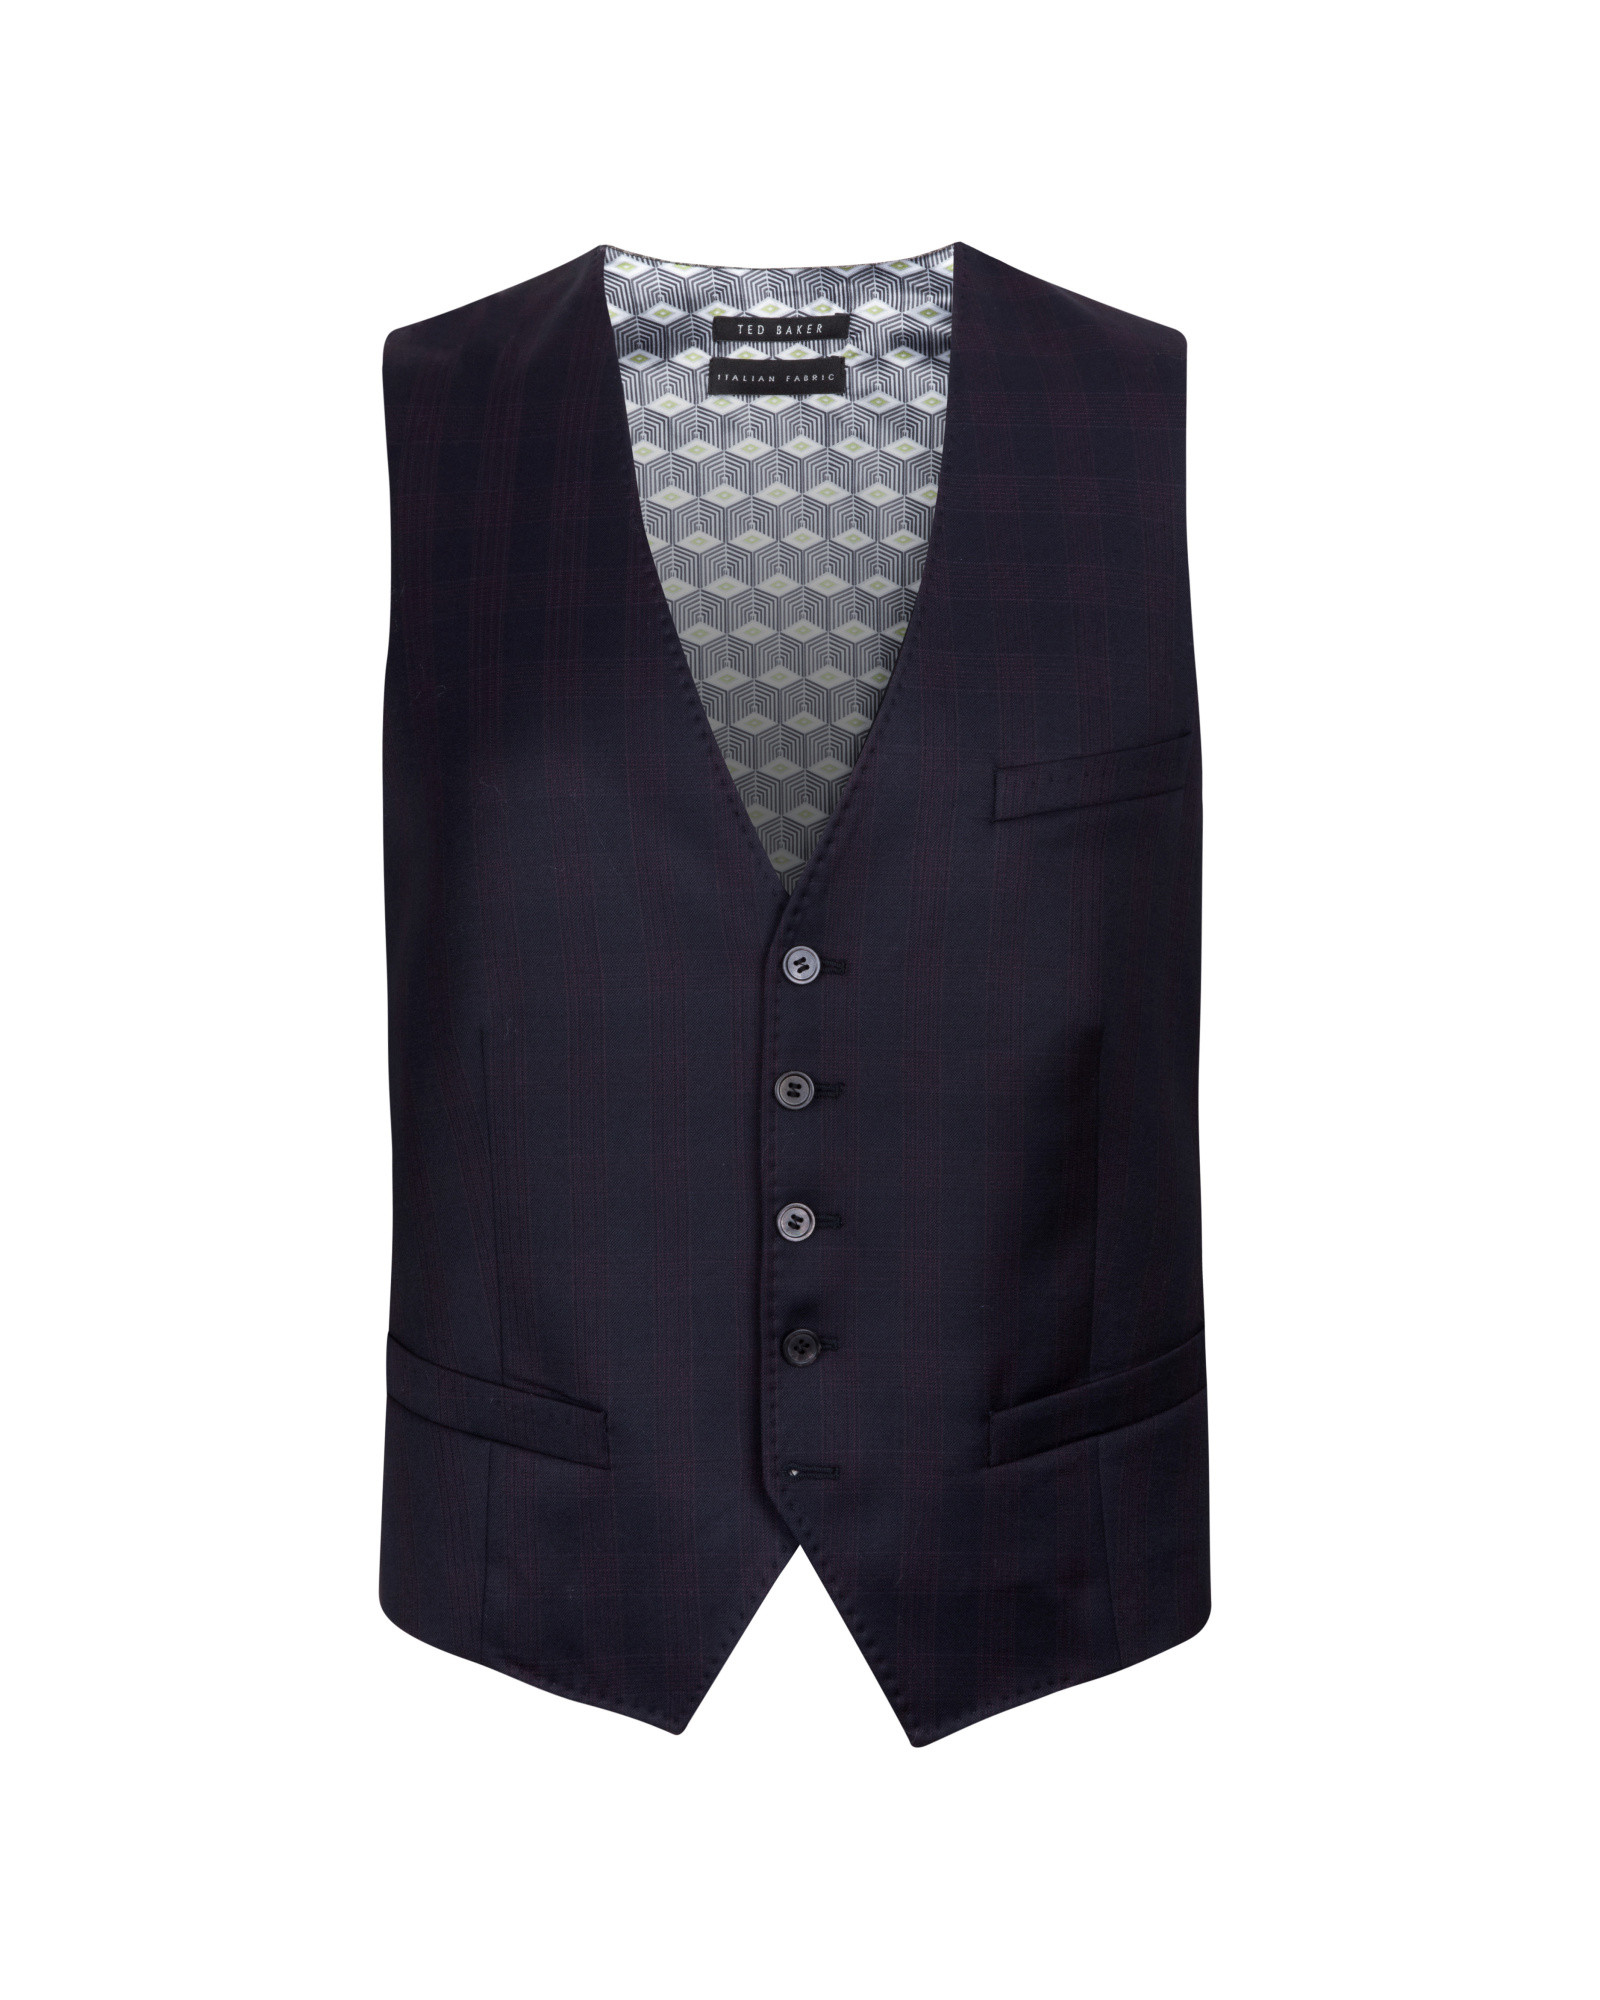 6a25144d83d5 Lyst - Ted Baker Debonair Wool Vest in Purple for Men